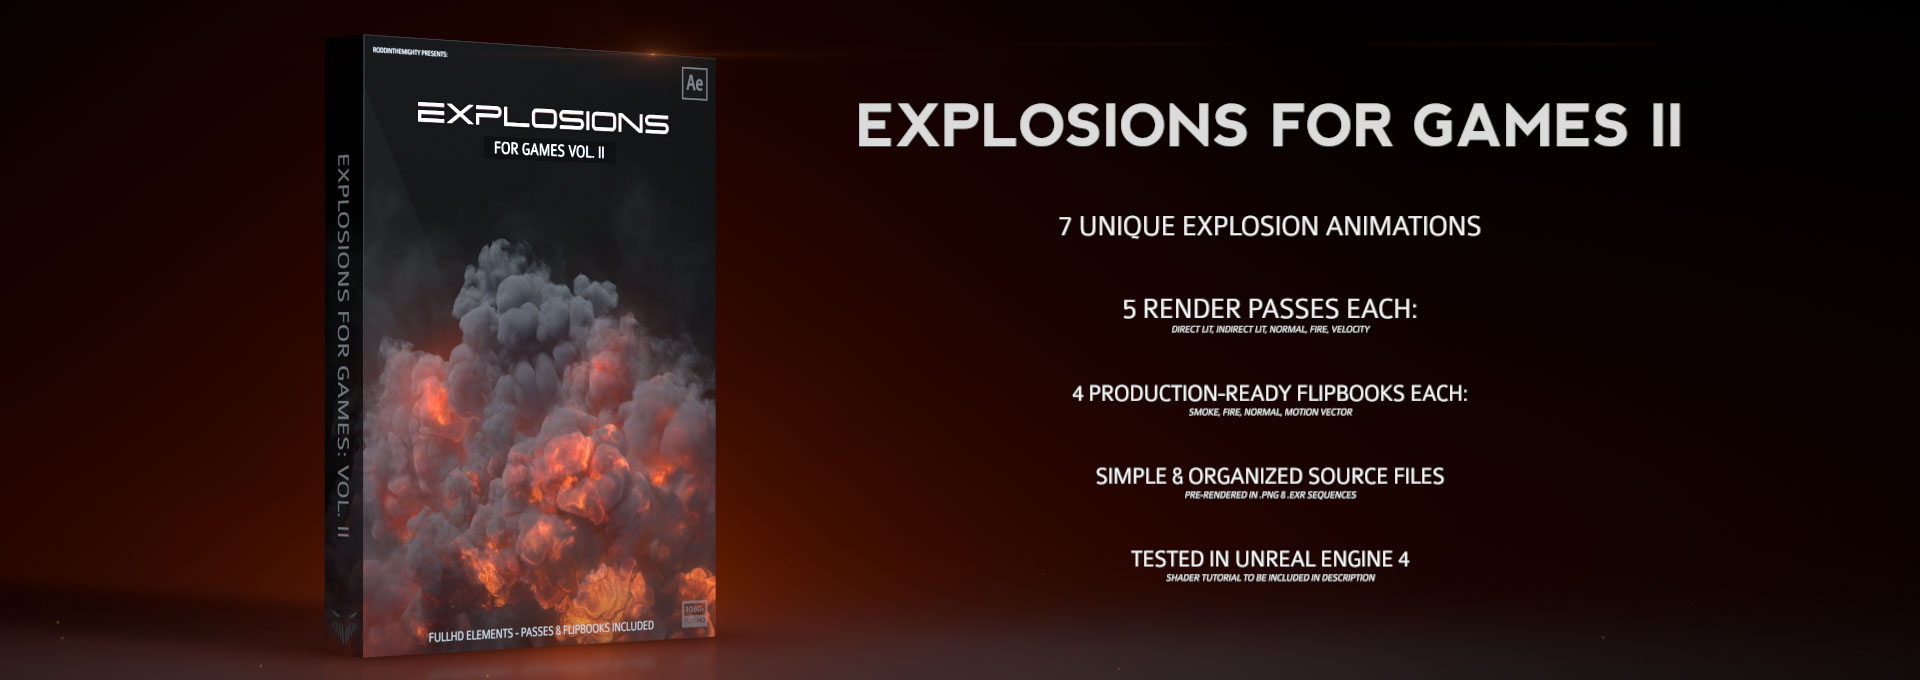 explosions_for_games_2_slider_preview